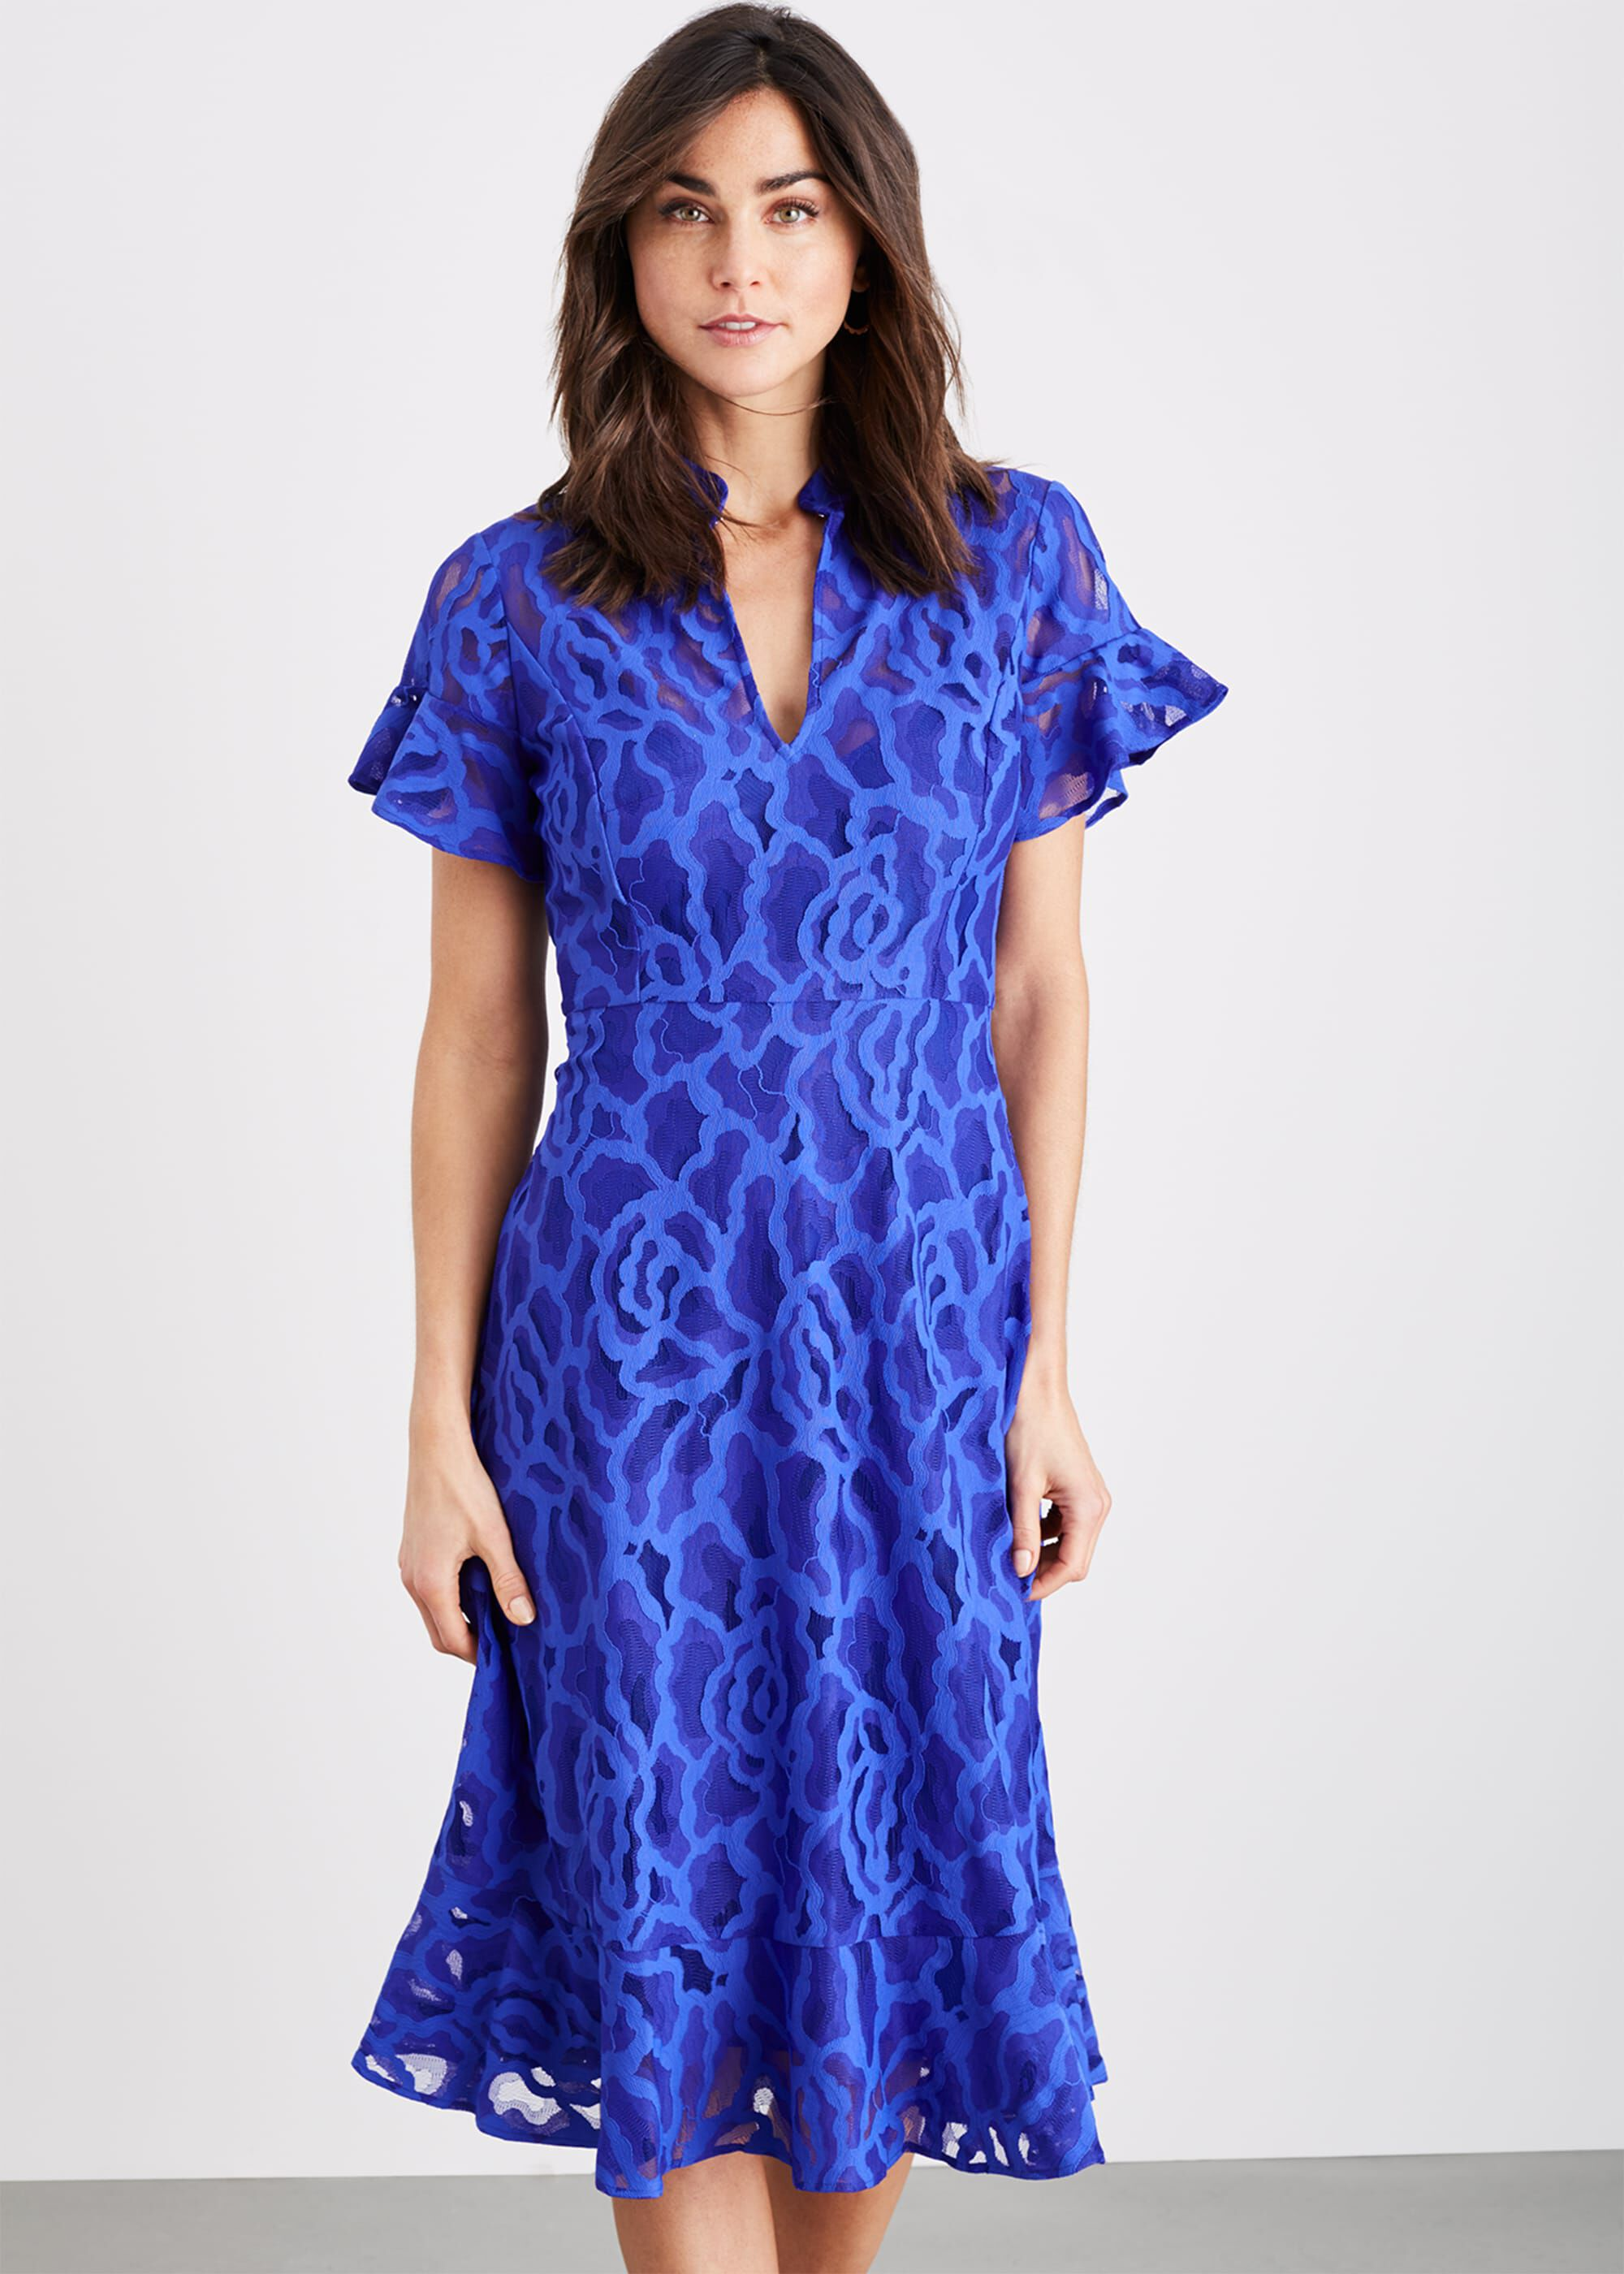 Damsel in a Dress Lulu Floral Lace Dress, Blue, Occasion Dress